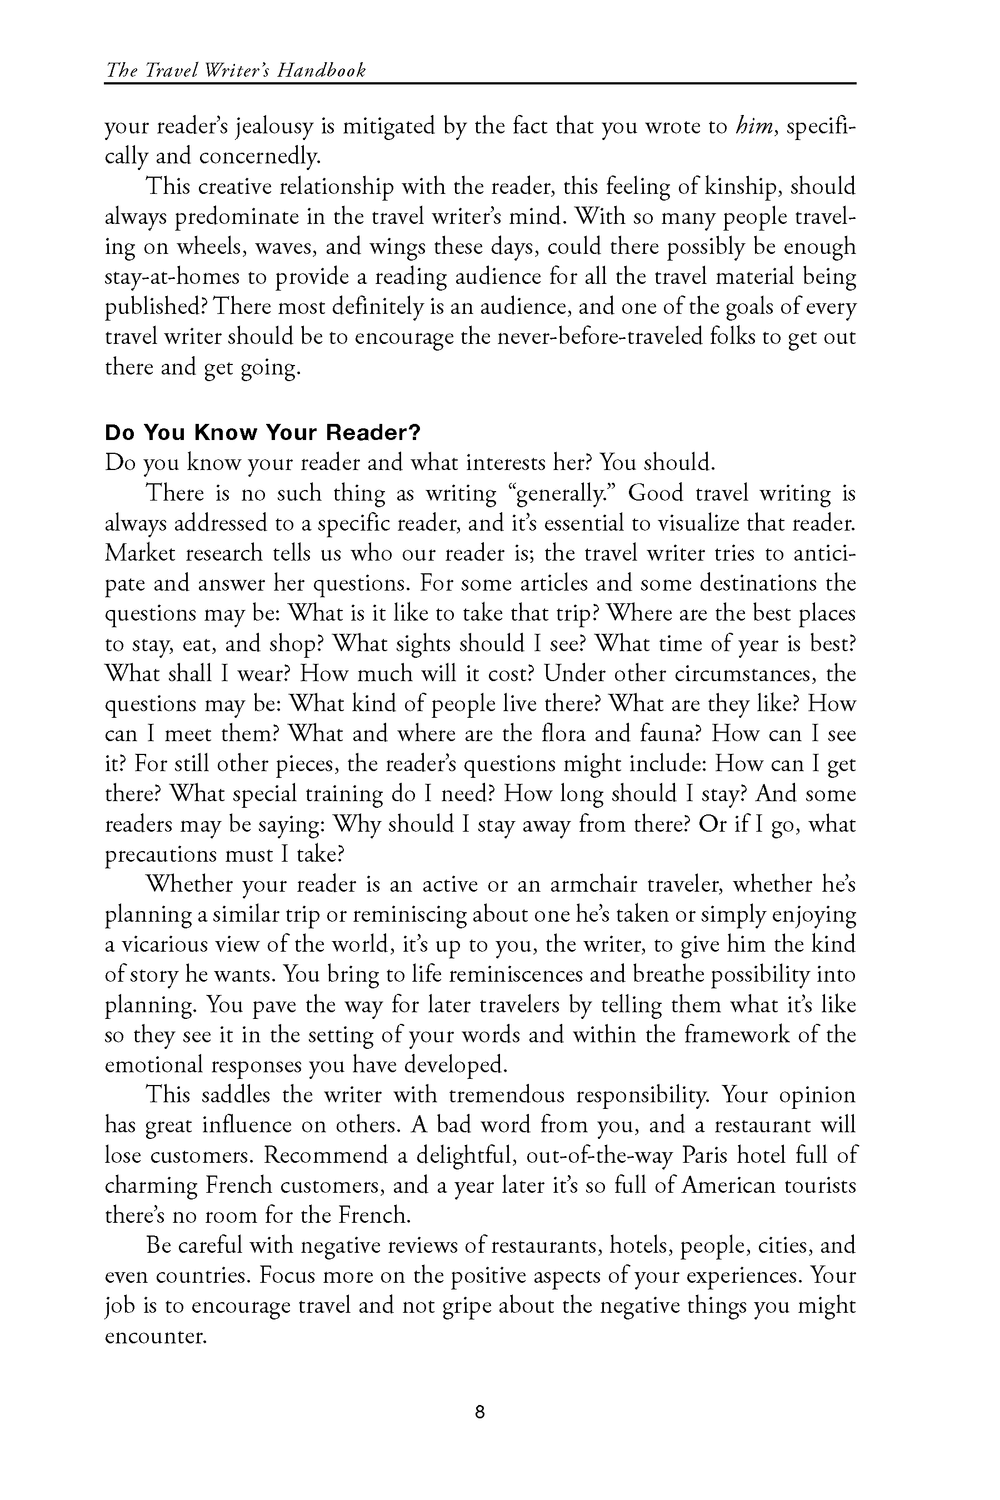 Travel Writer's Handbook_Page_10.png